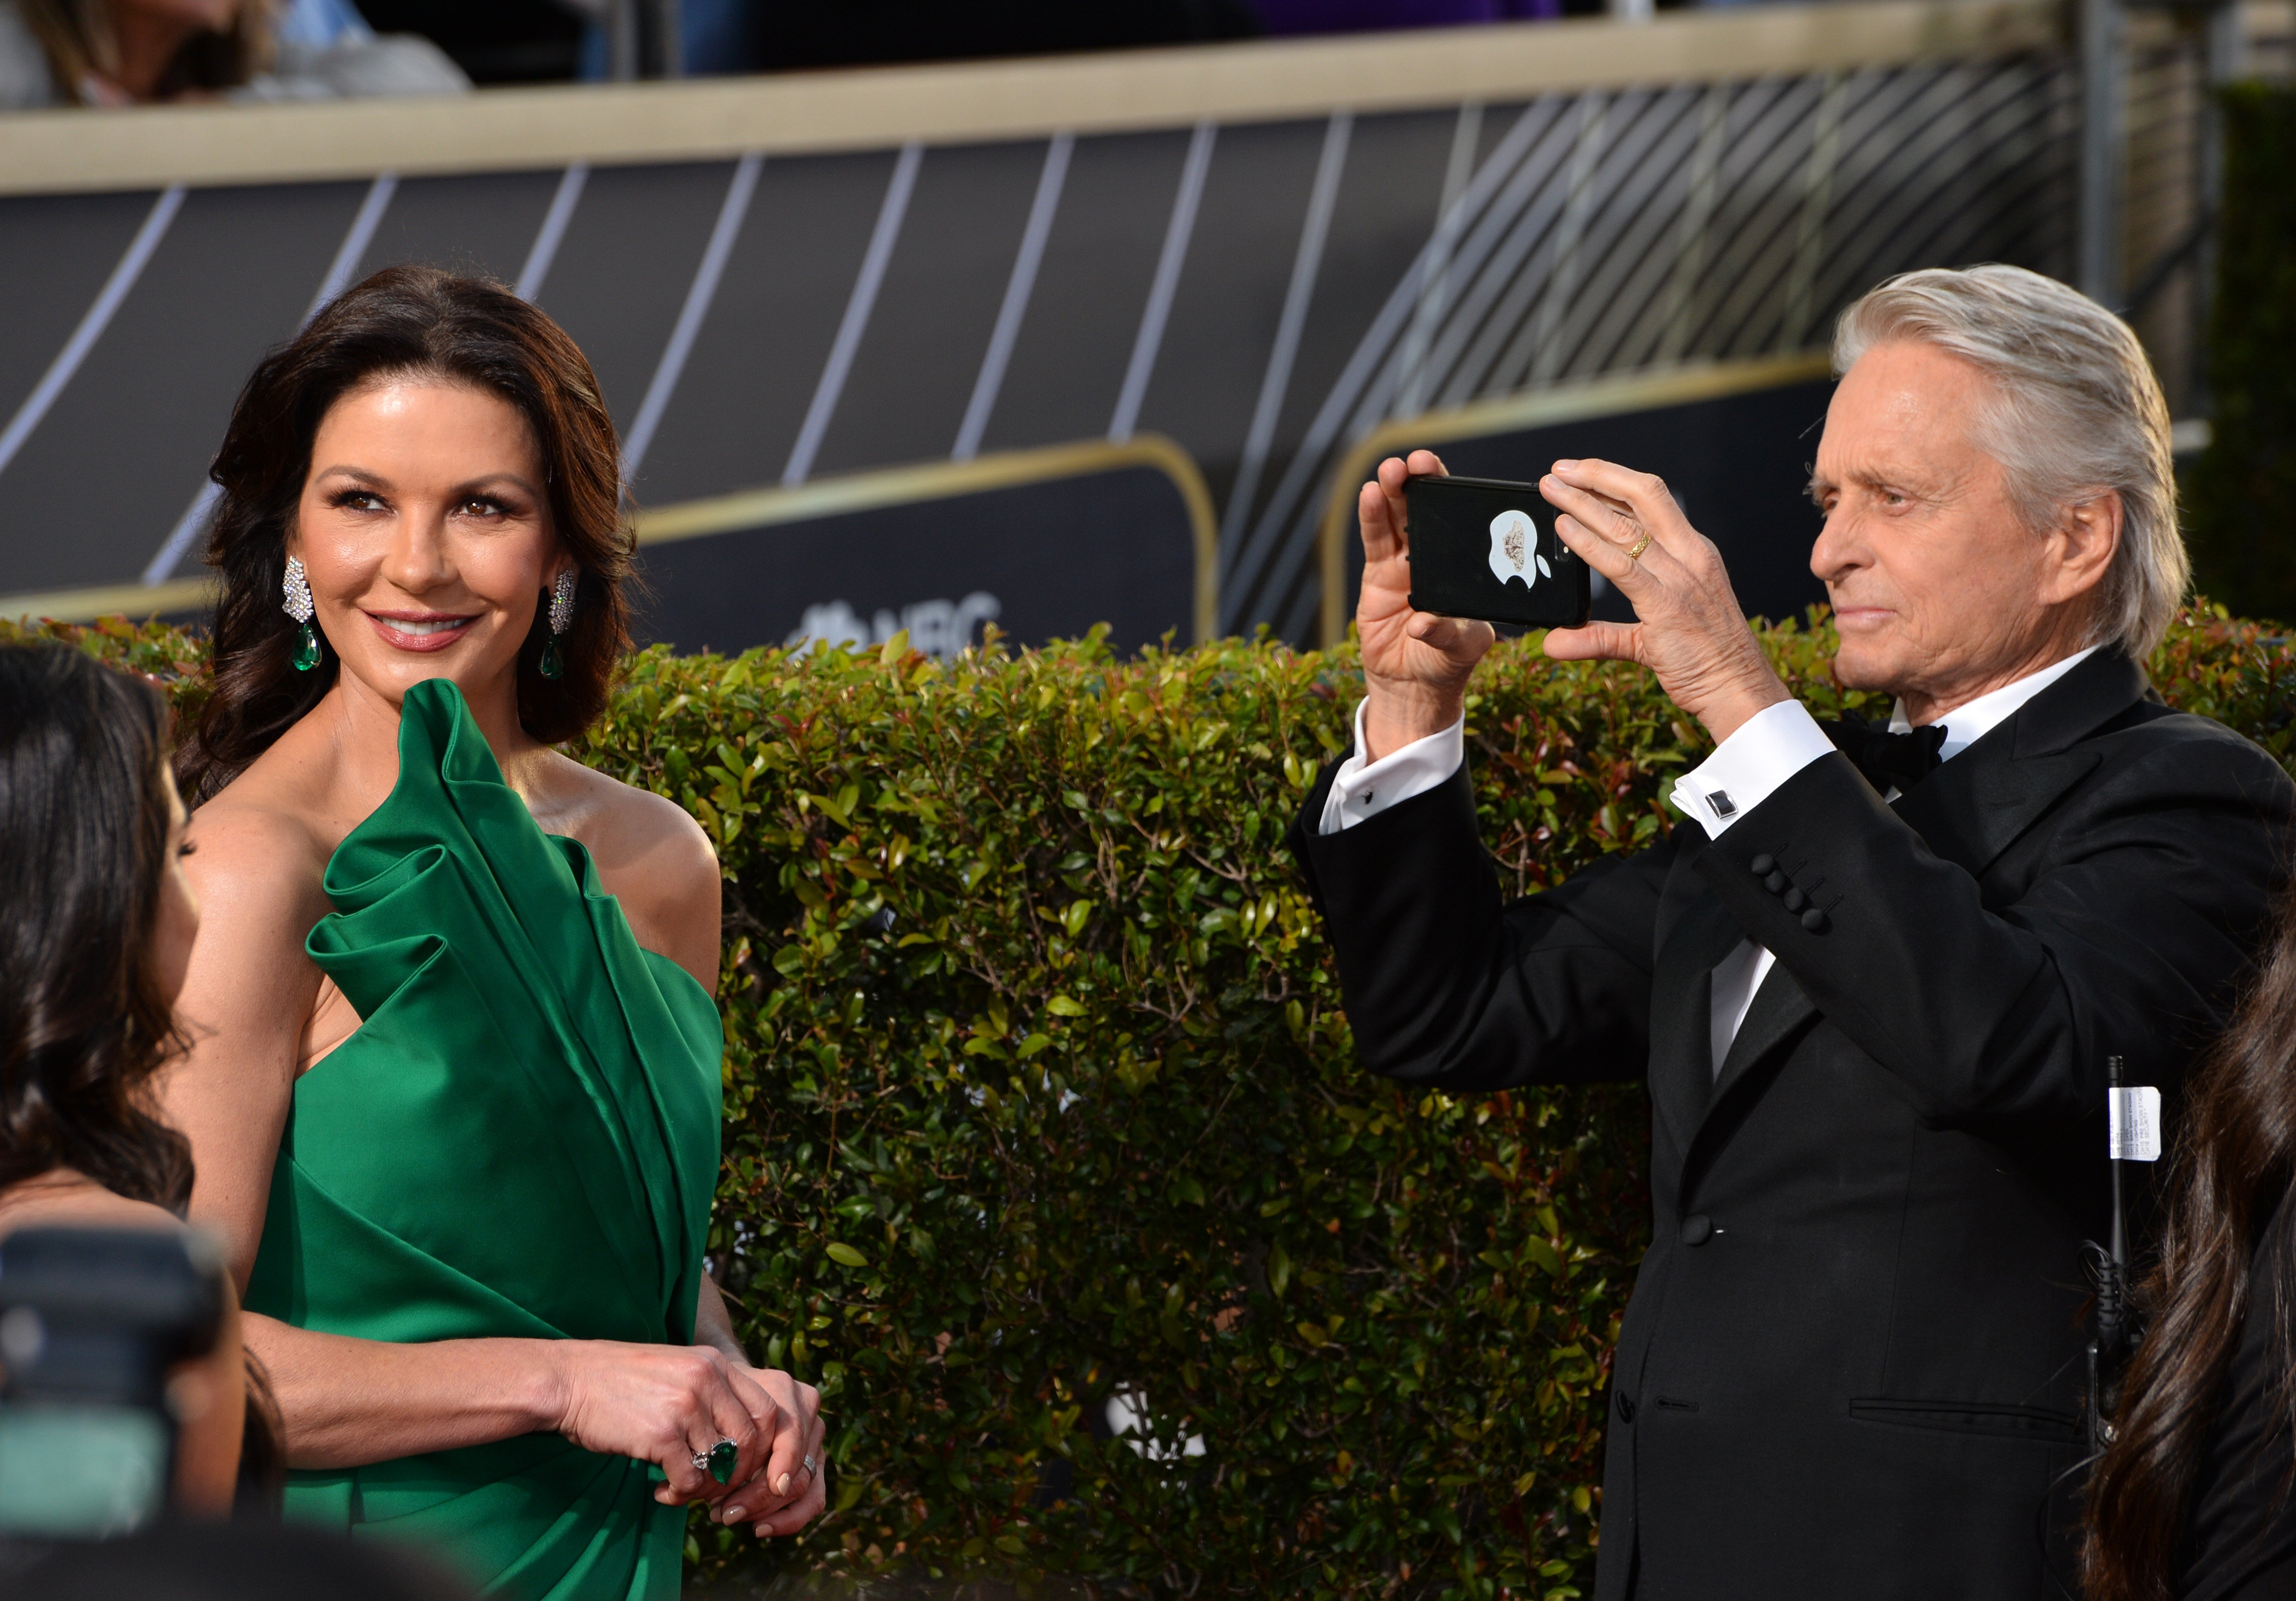 Catherine Zeta-Jones & Michael Douglas at the 2019 Golden Globe Awards at the Beverly Hilton Hotel; January 06, 2019 | Photo: Getty Images